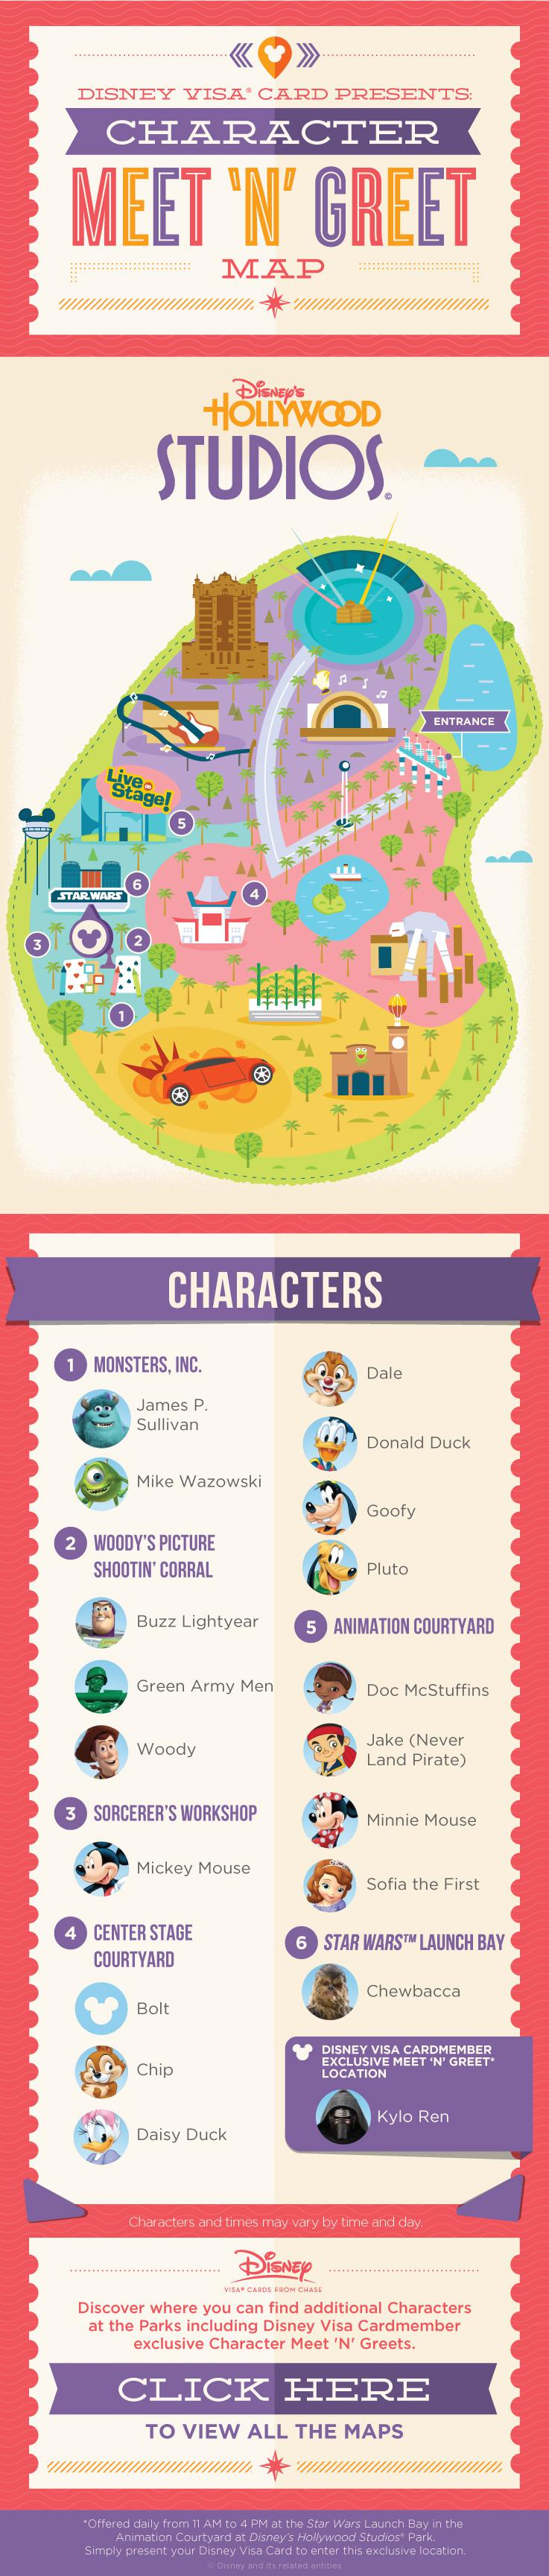 Disney Hollywood Studios Character Experience Map